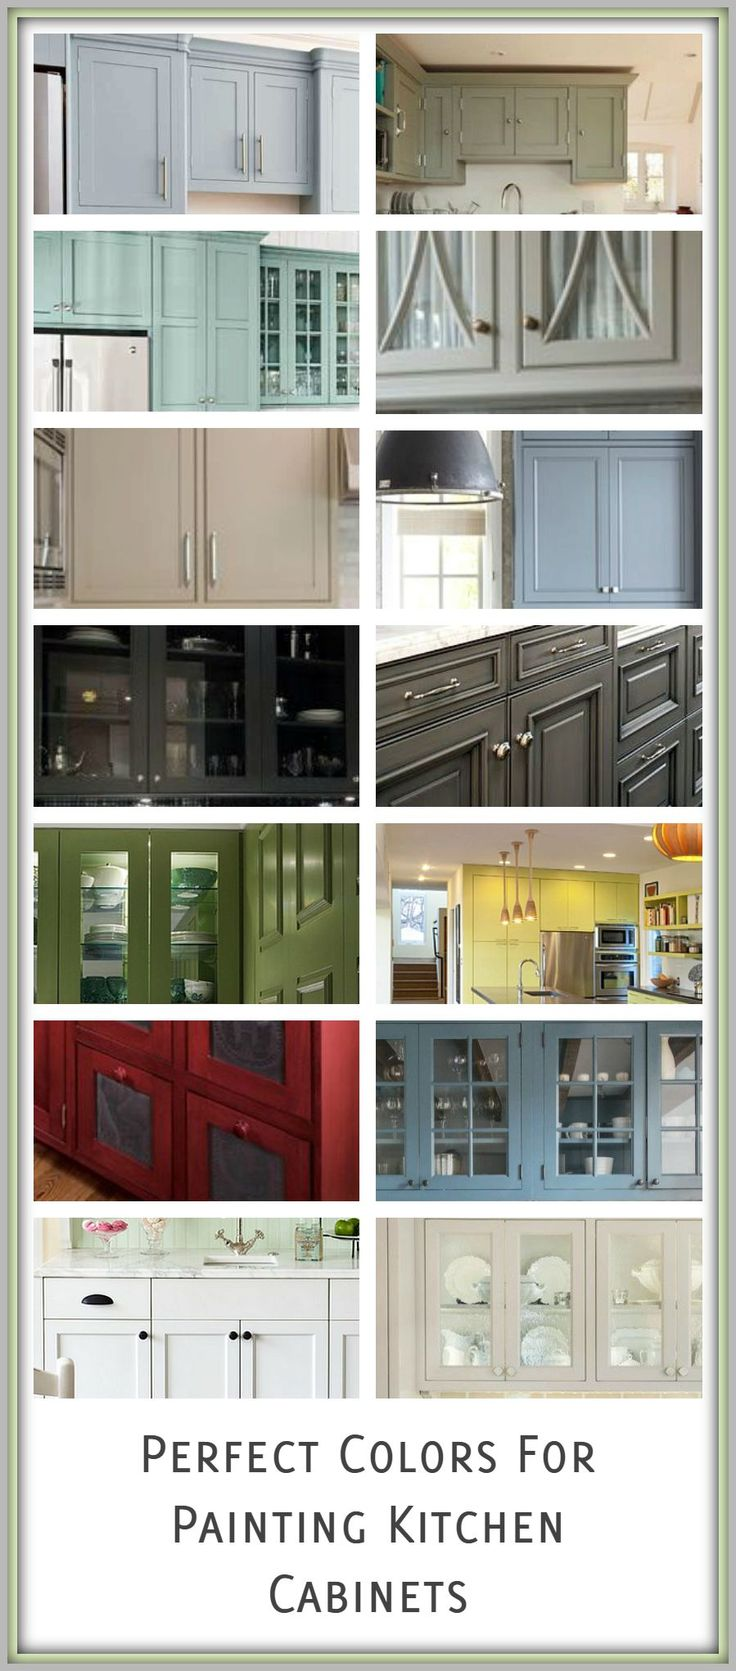 Exceptional Great Colors For Painting Kitchen Cabinets